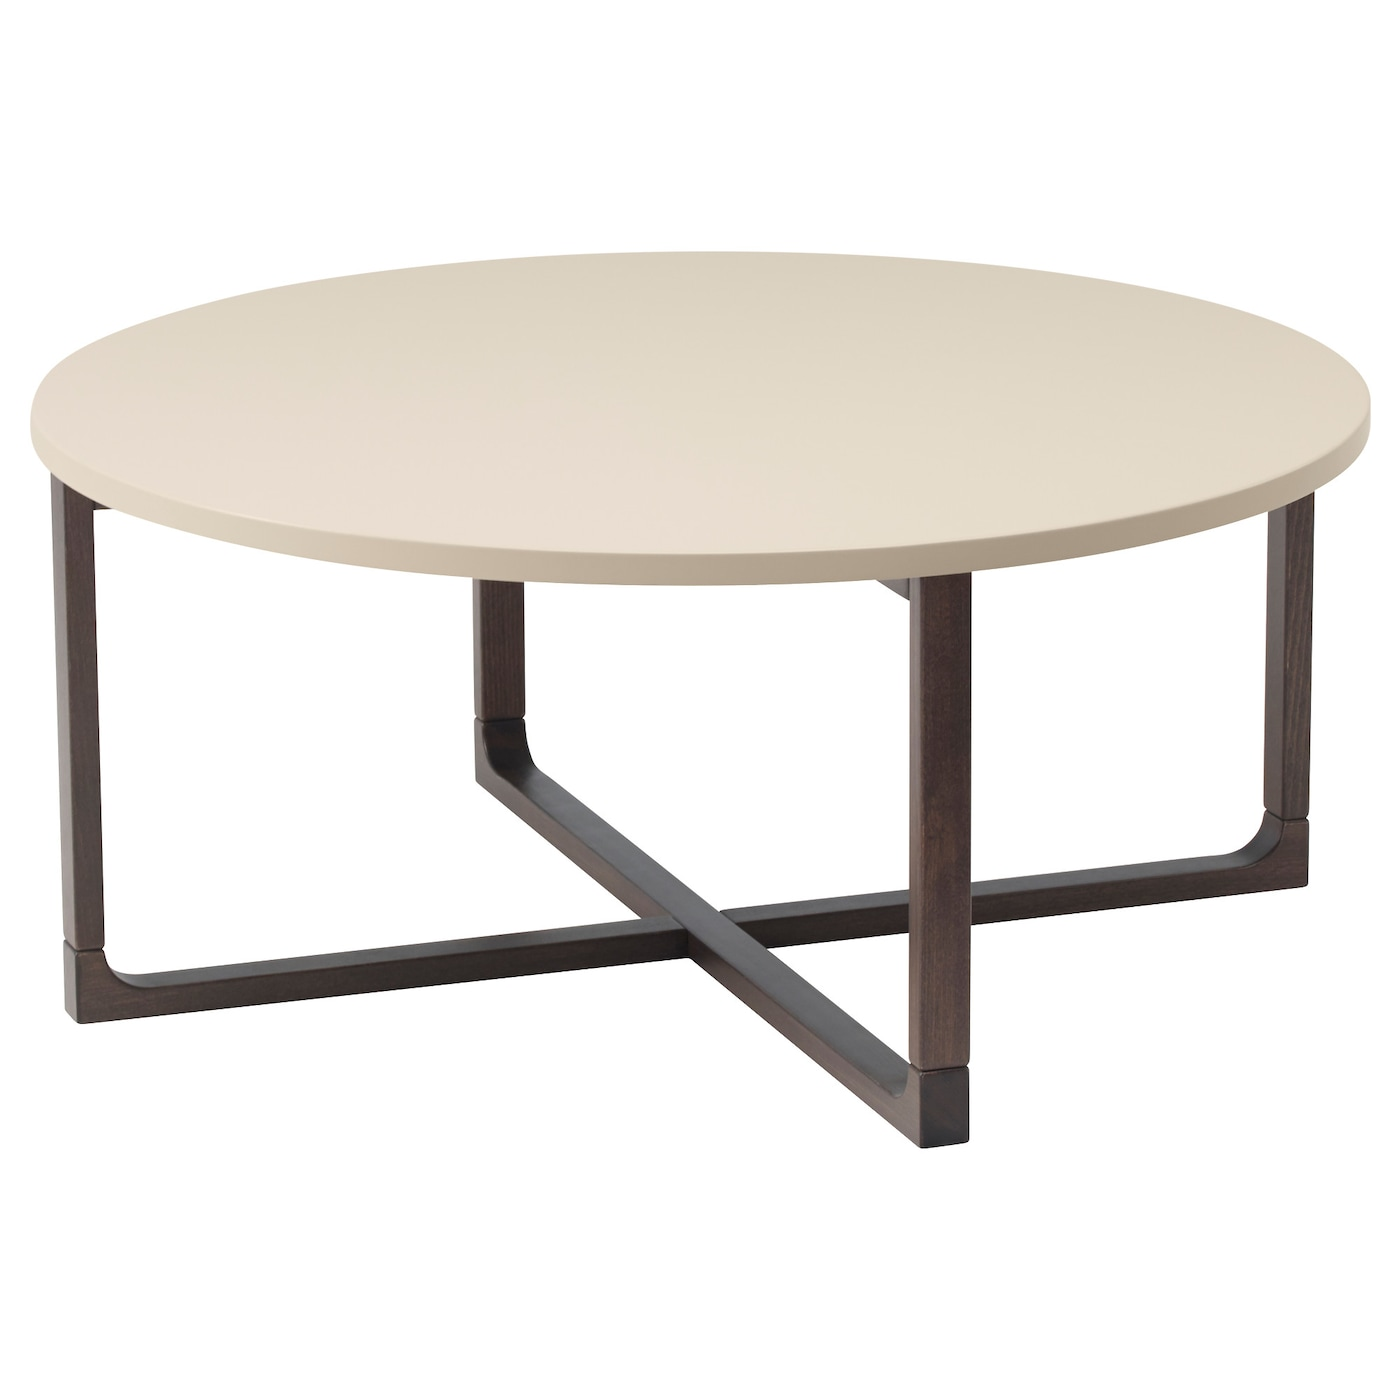 Rissna coffee table beige 90 cm ikea Ikea coffee tables and end tables